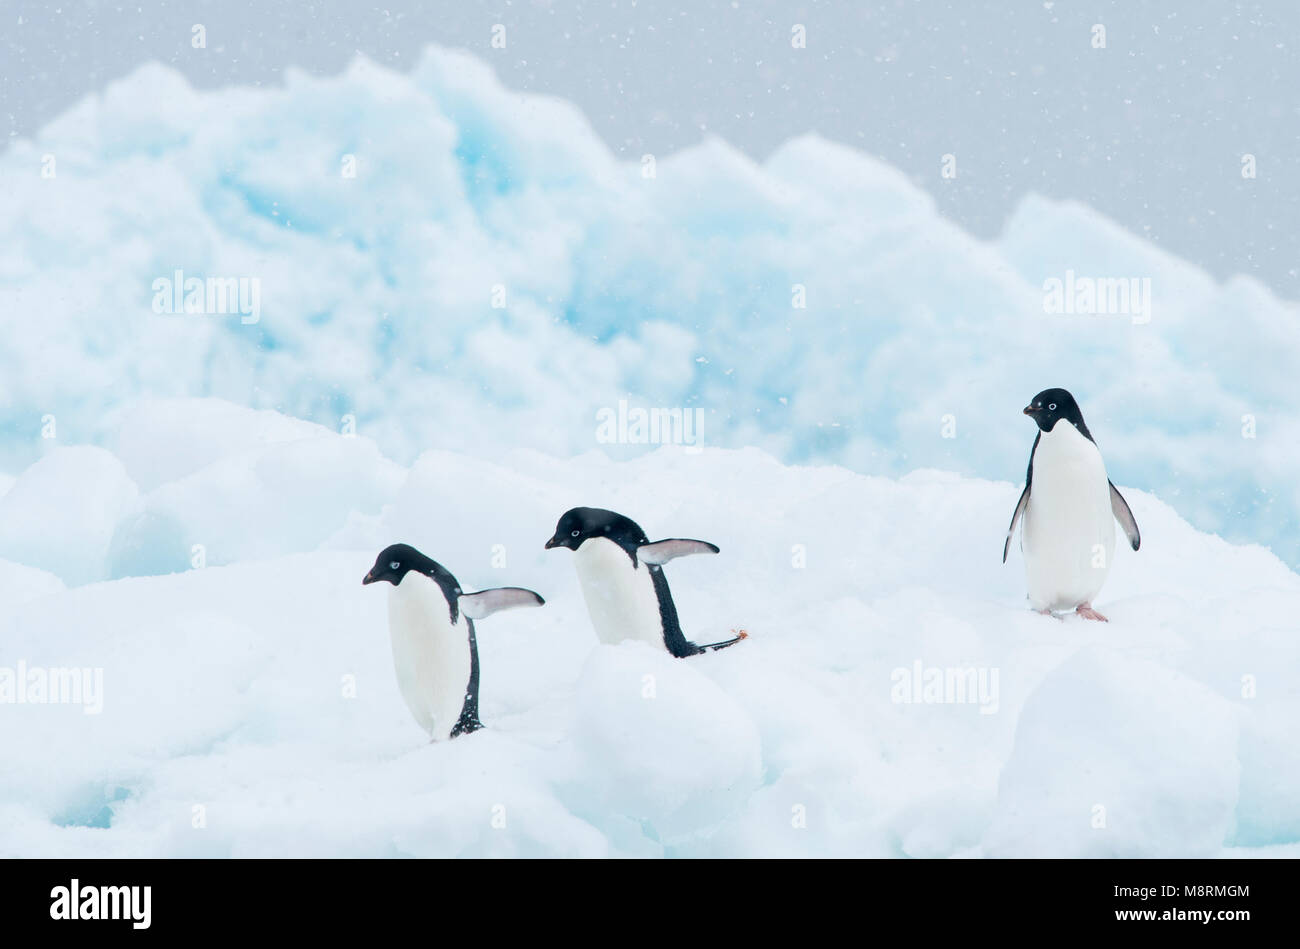 Adelie penguins walk along the top of an iceberg as snow falls in Antarctica. - Stock Image